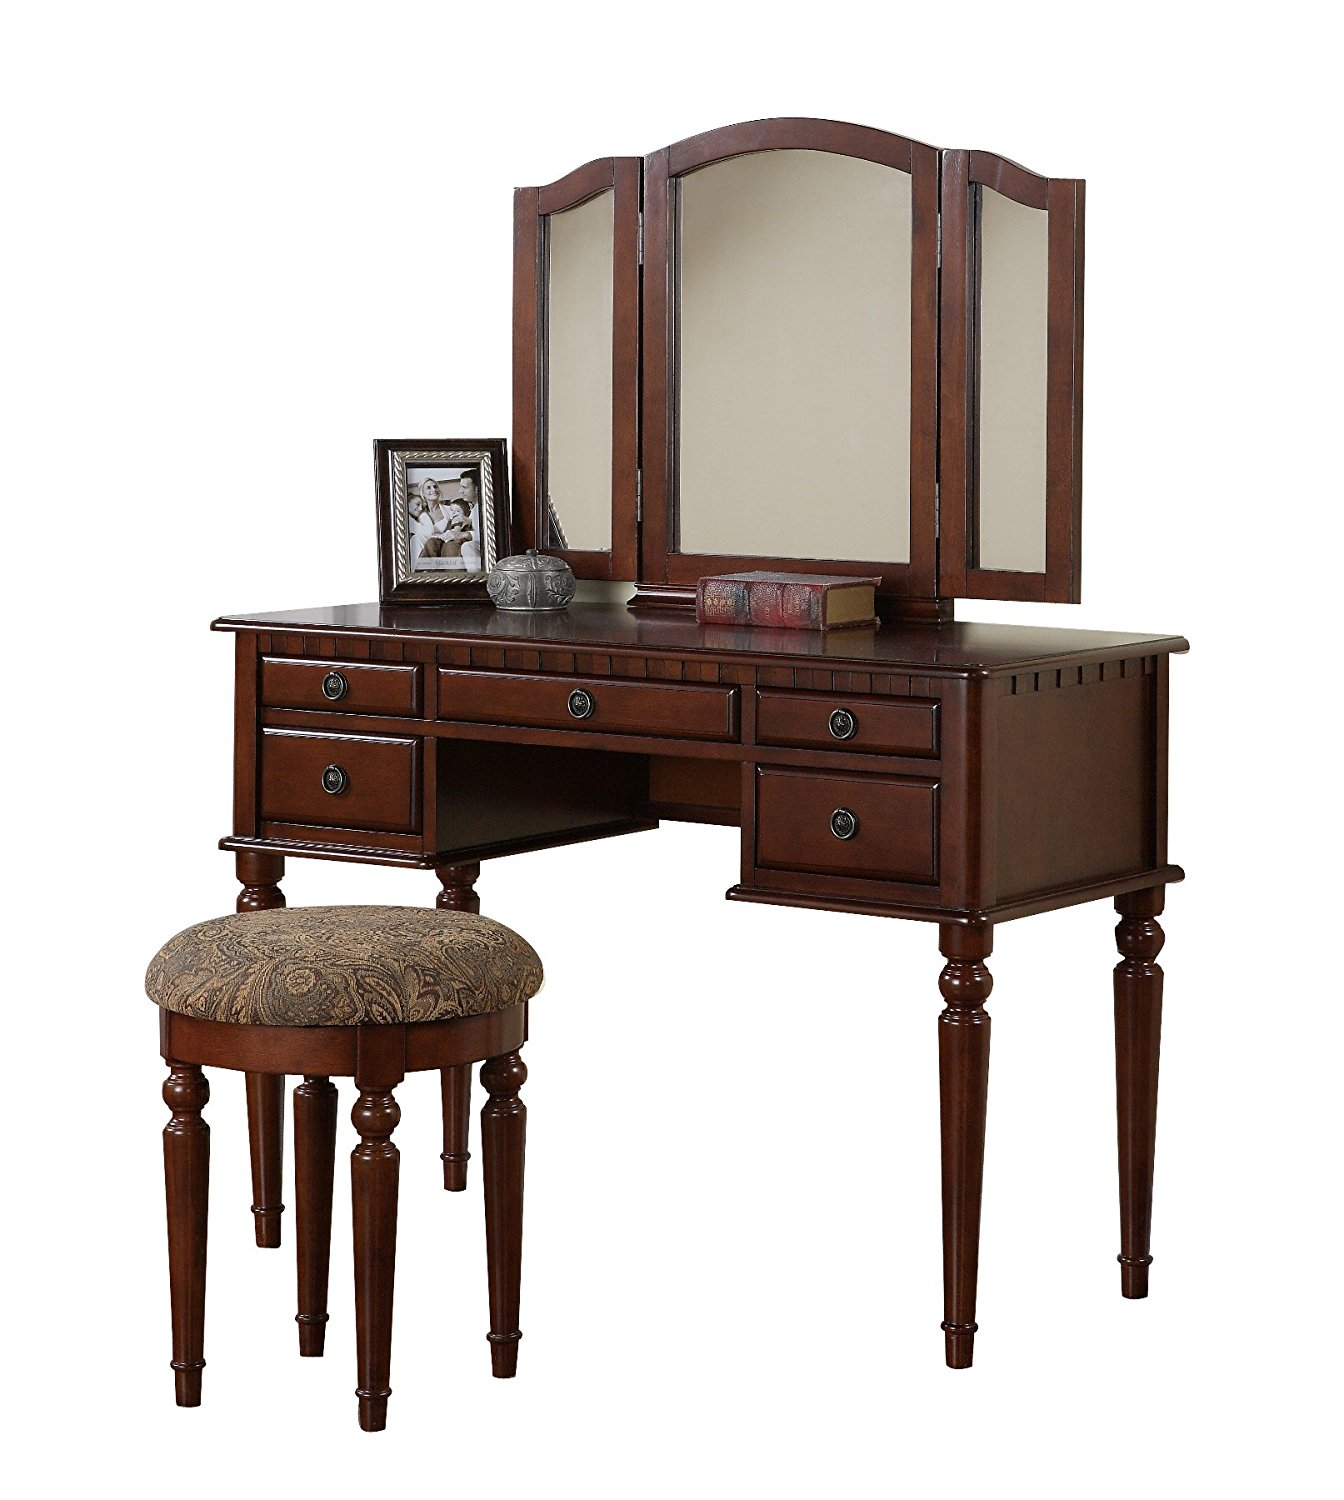 Bobkona St. Croix Collection Vanity Set with Stool, Cherry